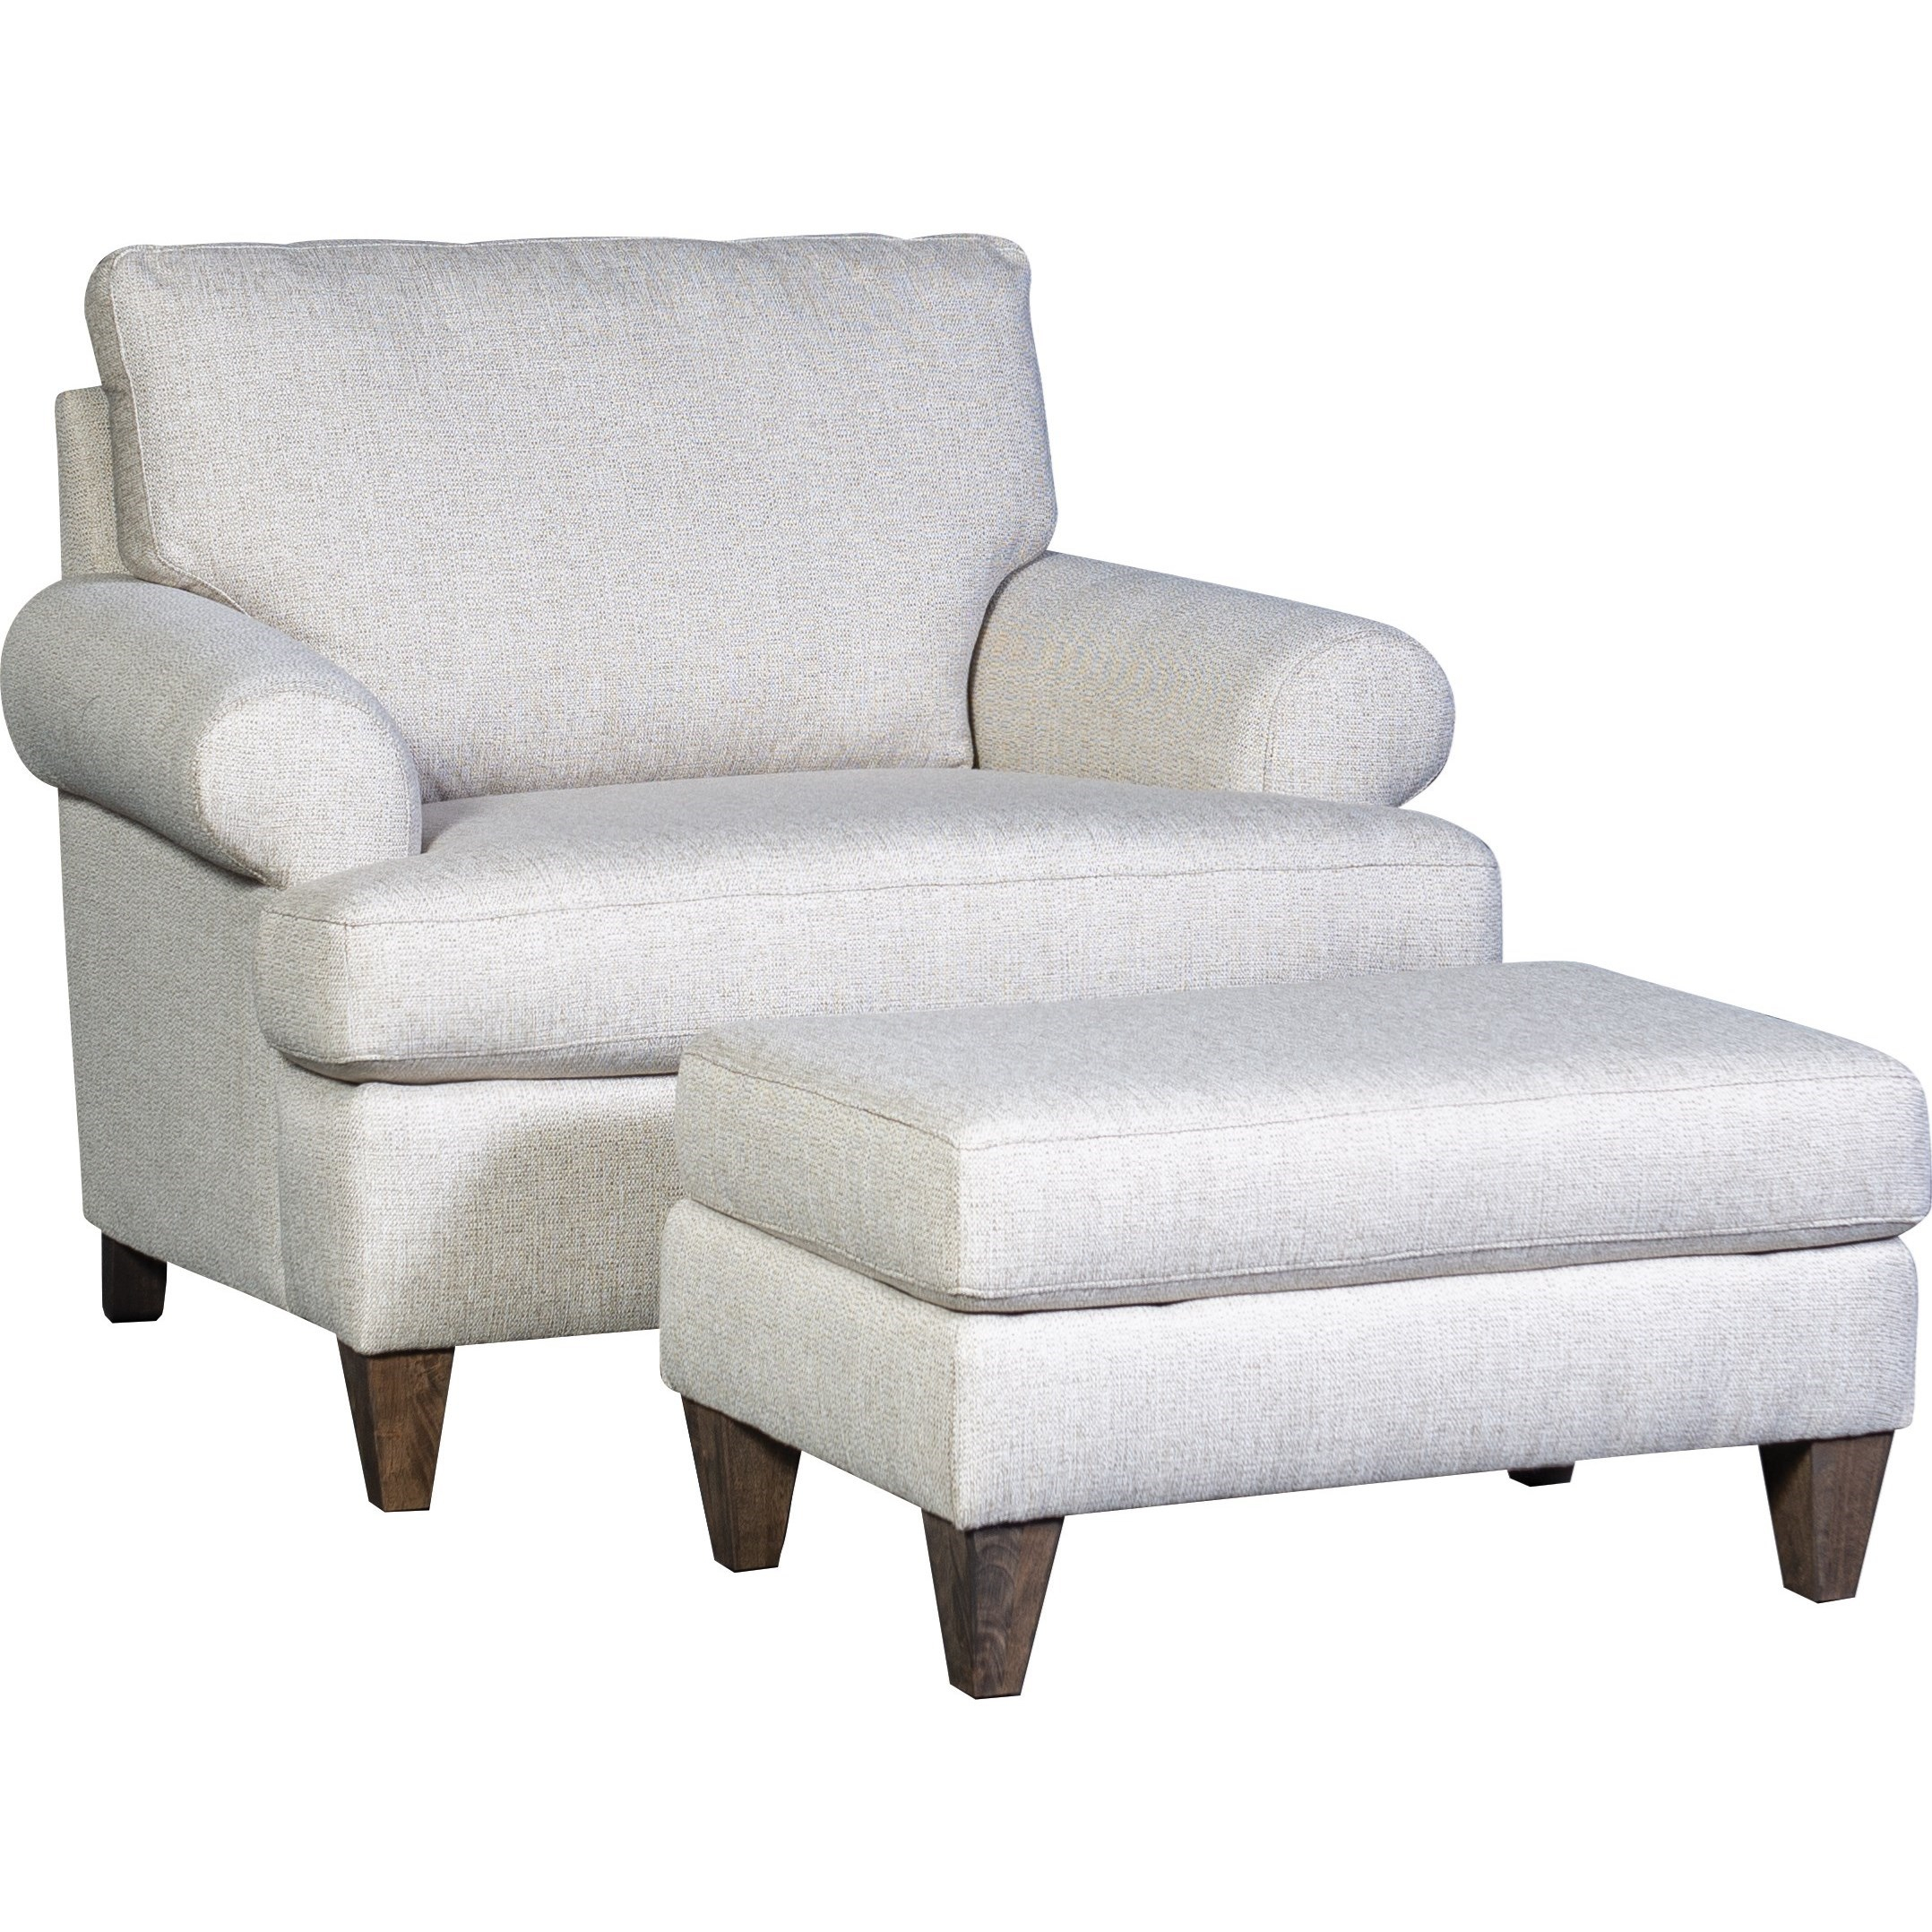 3270 Chair by Mayo at Wilson's Furniture